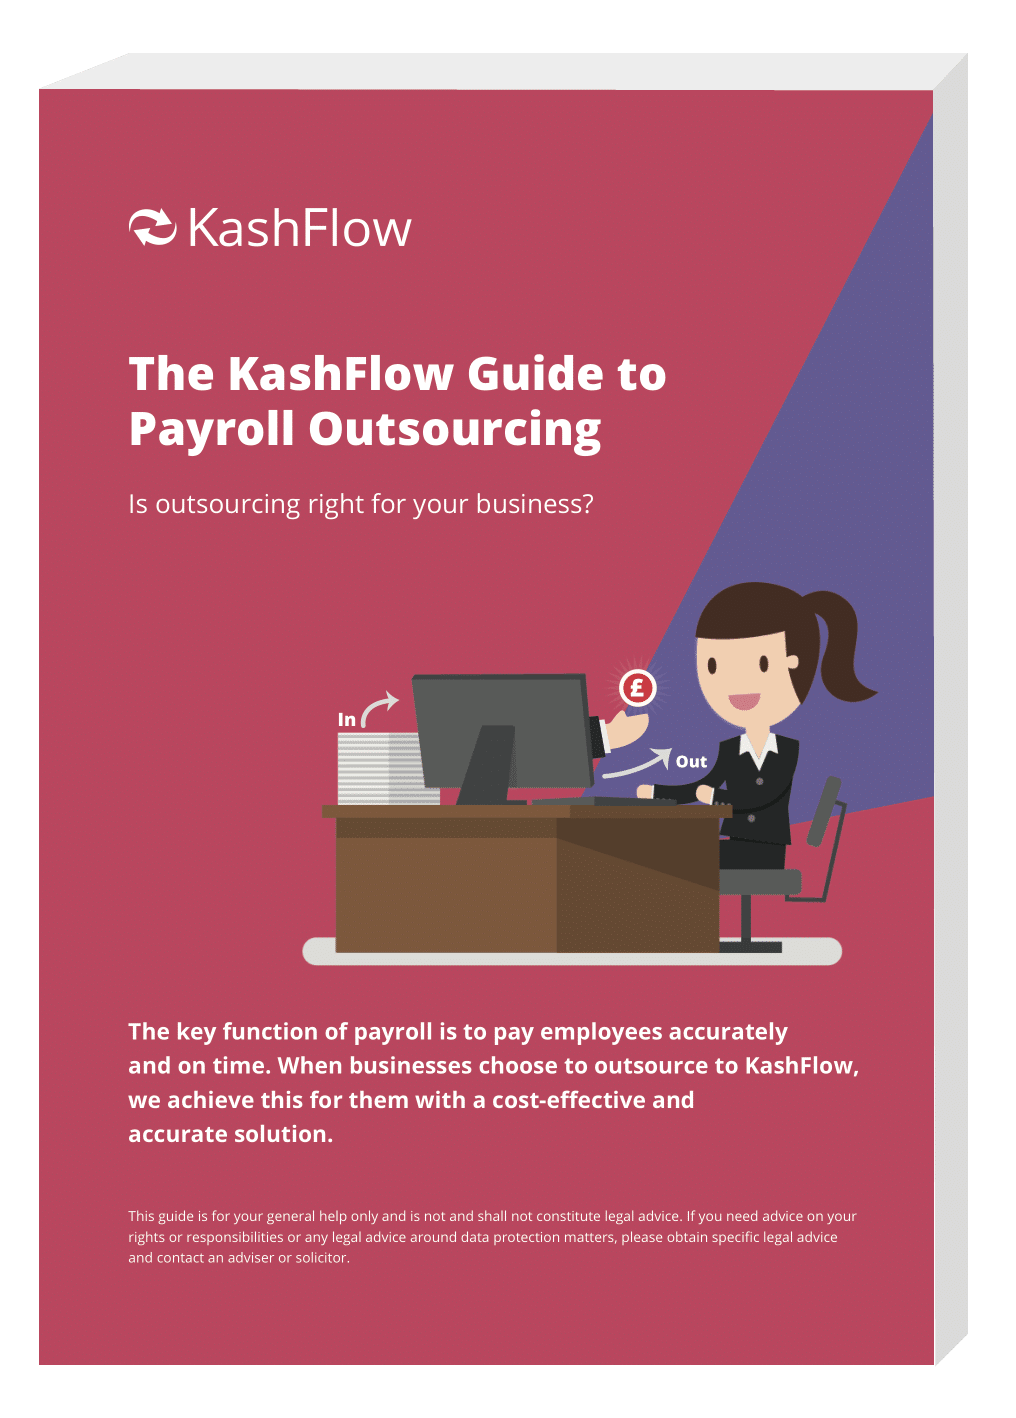 Front cover of KashFlow's Guide to Payroll Outsourcing